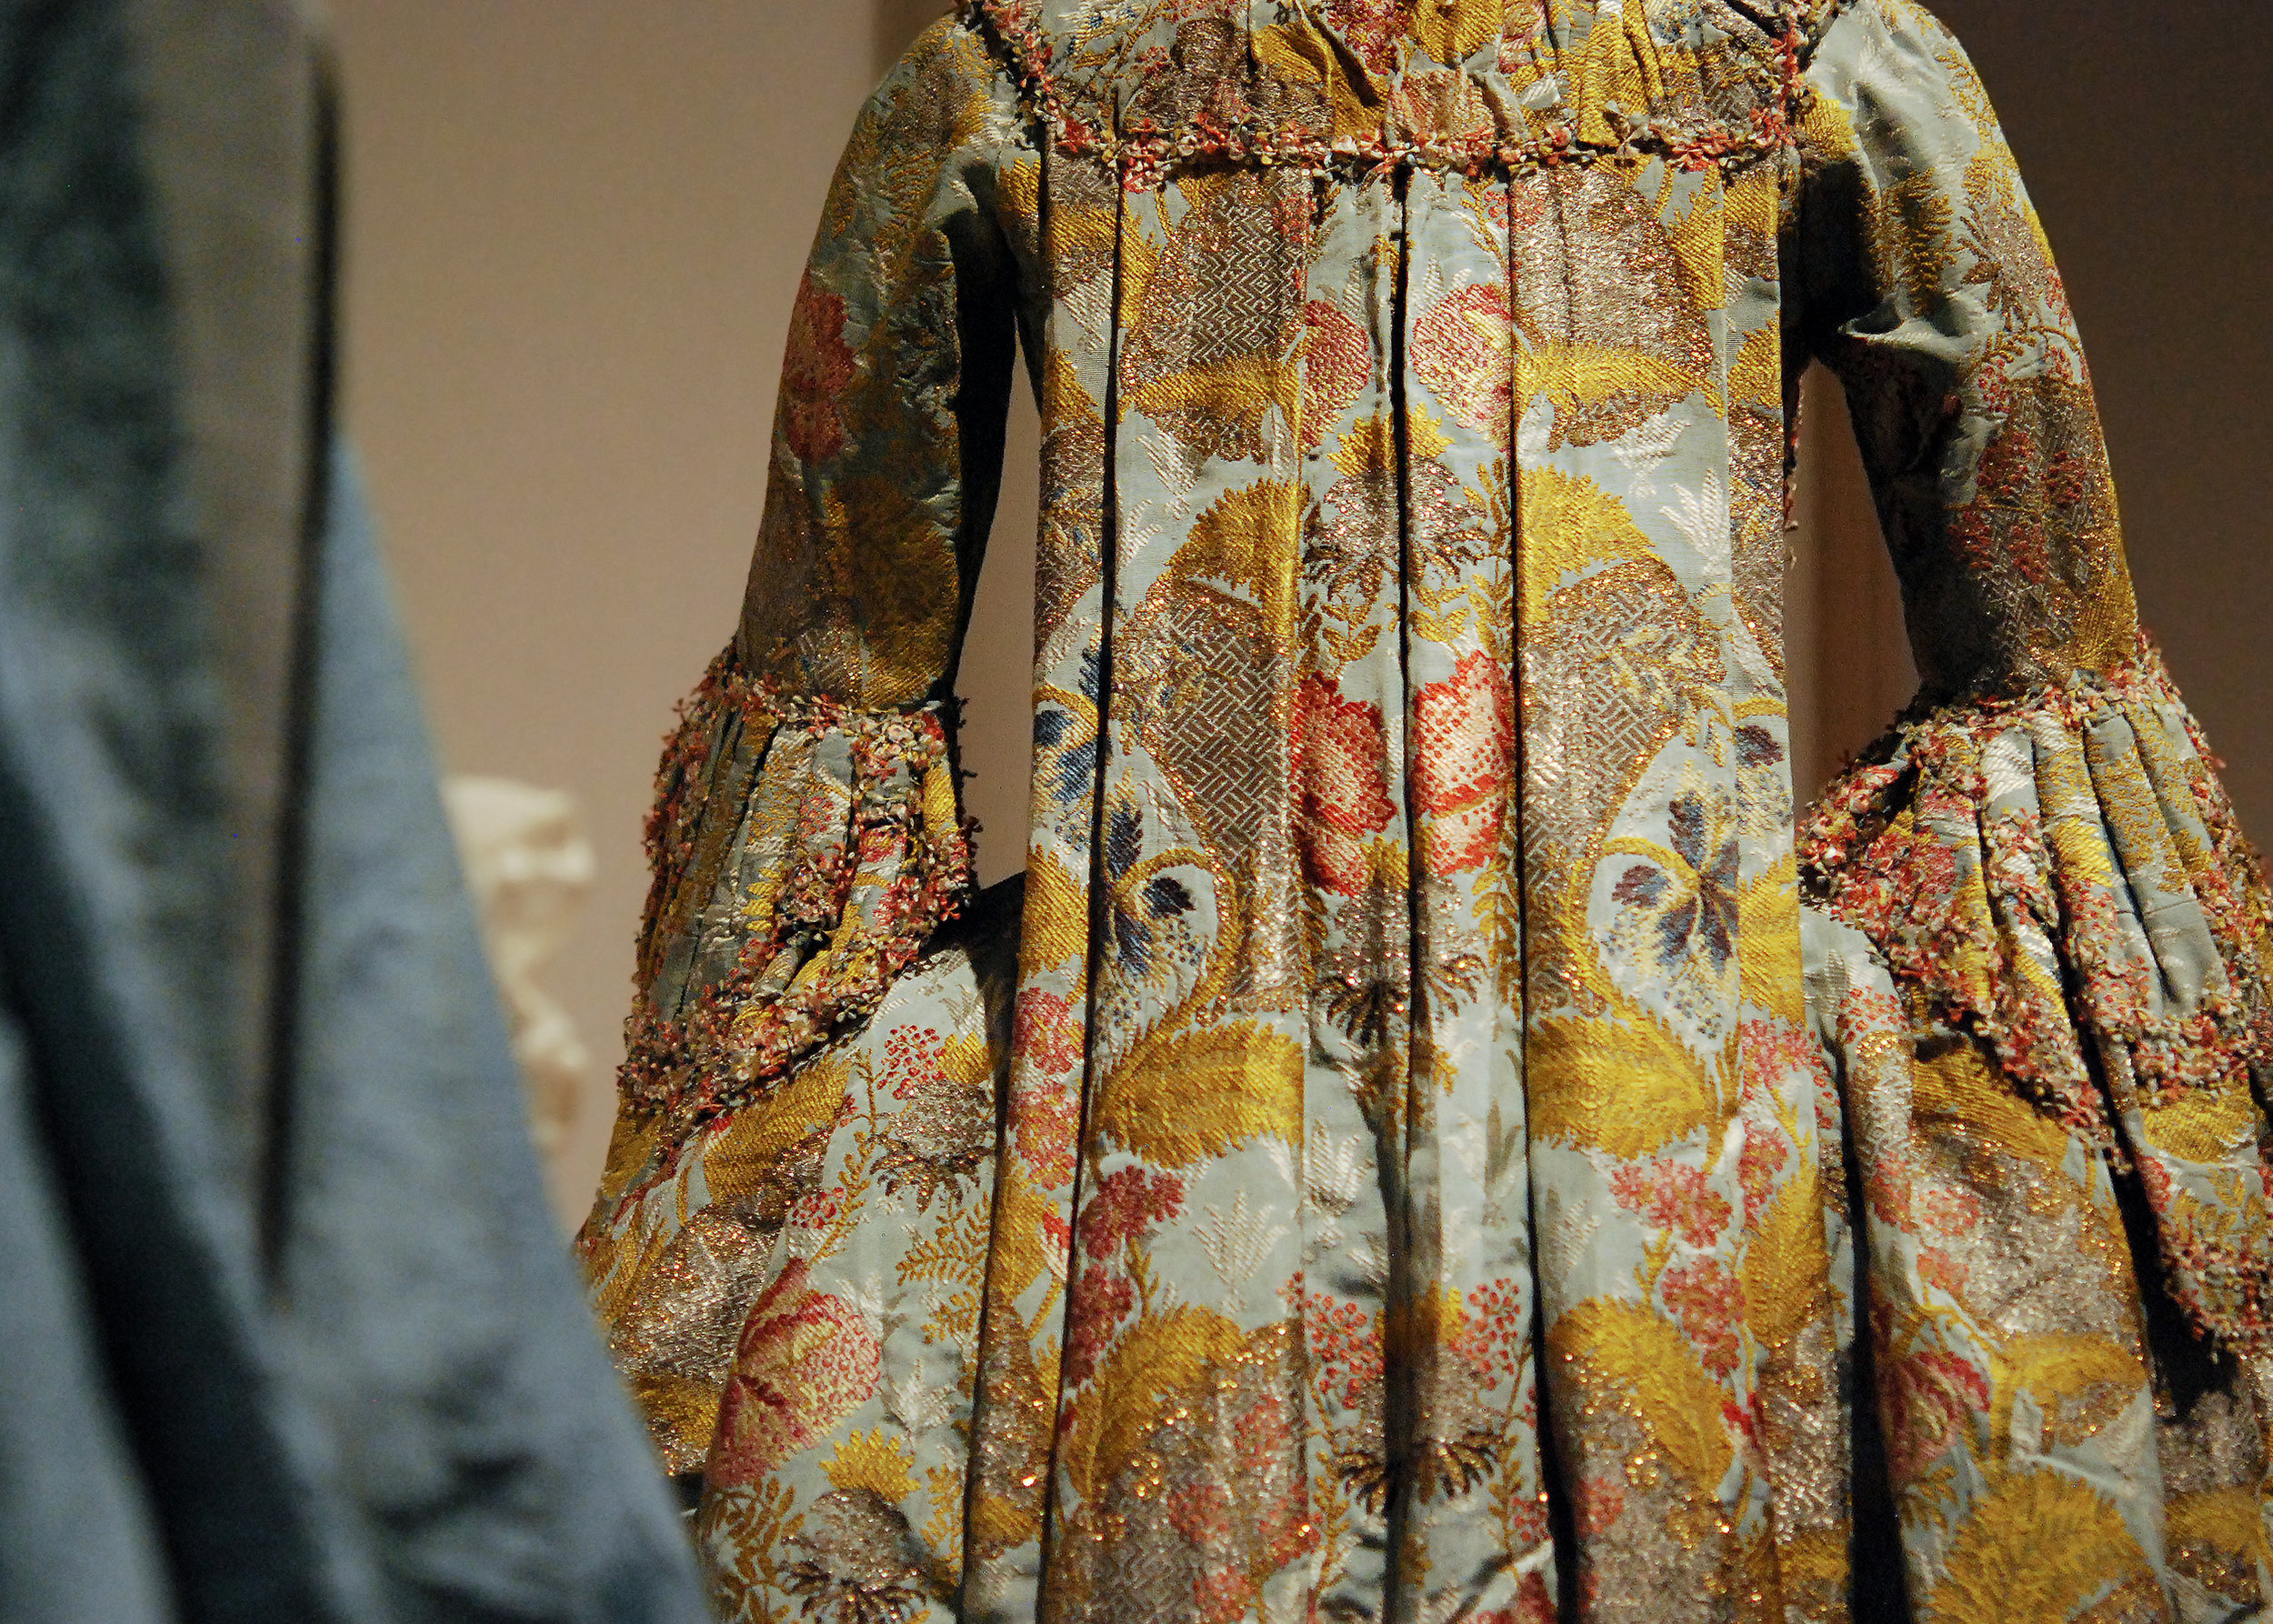 Robe A La Francaise , ca. 1760. Light blue silk faille, brocaded with polychrome silk, gold and silver metal thread, trimmed with polychrome silk fly fringe